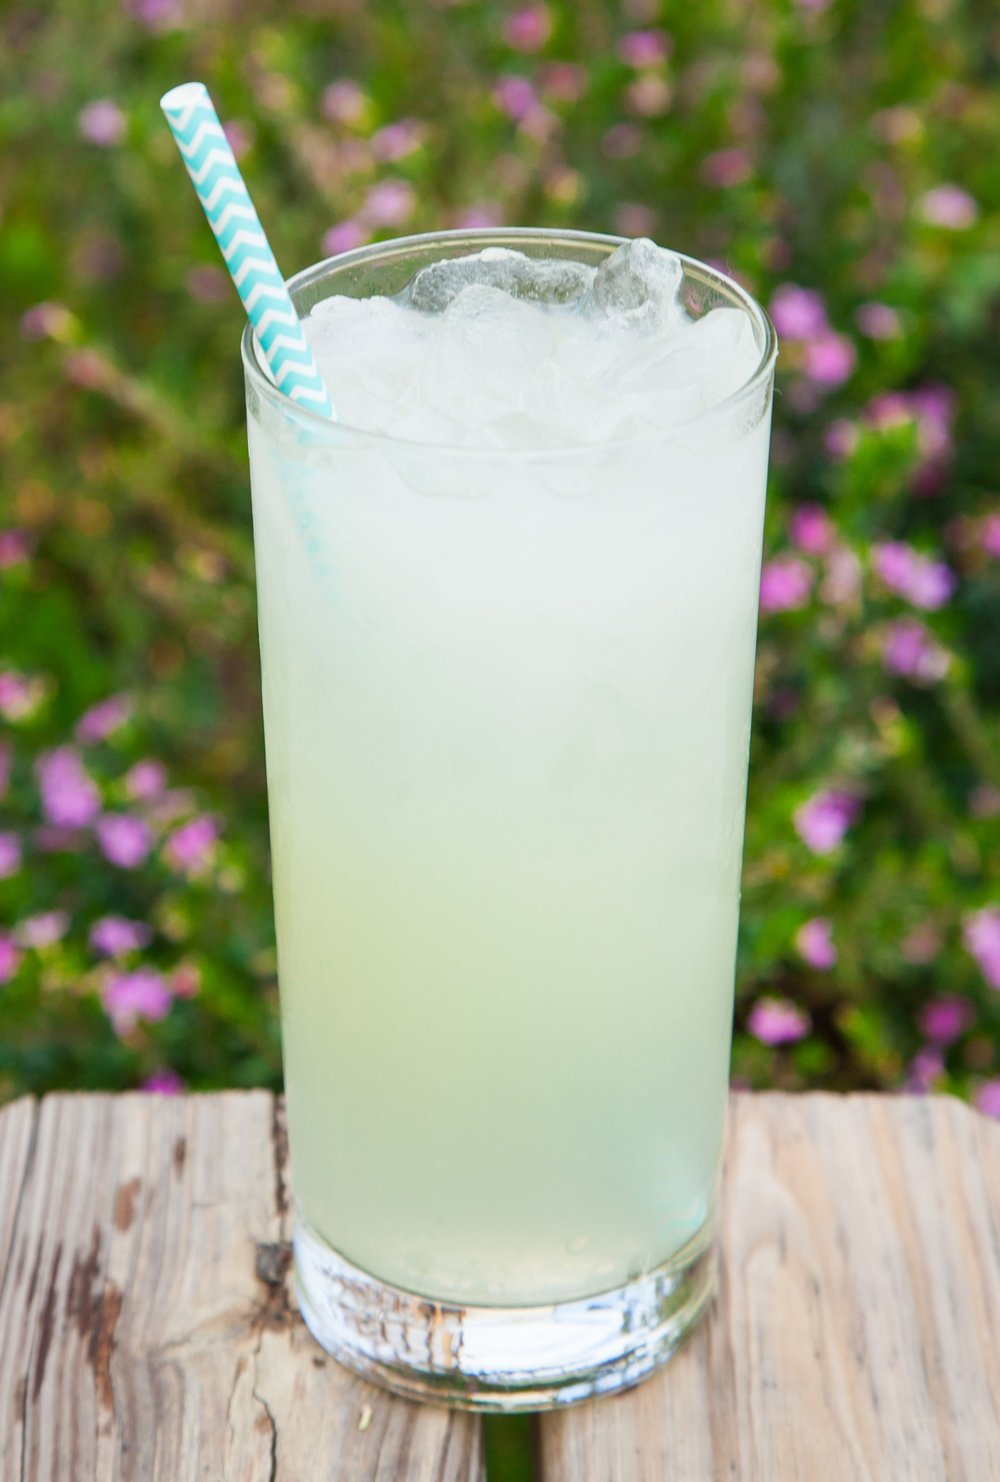 Classic Lemonadeor Limeade - A perfectly balanced old-fashioned lemonade or limeade. Made from fresh squeezed lemon juice, pure cane sugar, and filtered water.Tip: Add a fresh flavor to make it even more delicious.